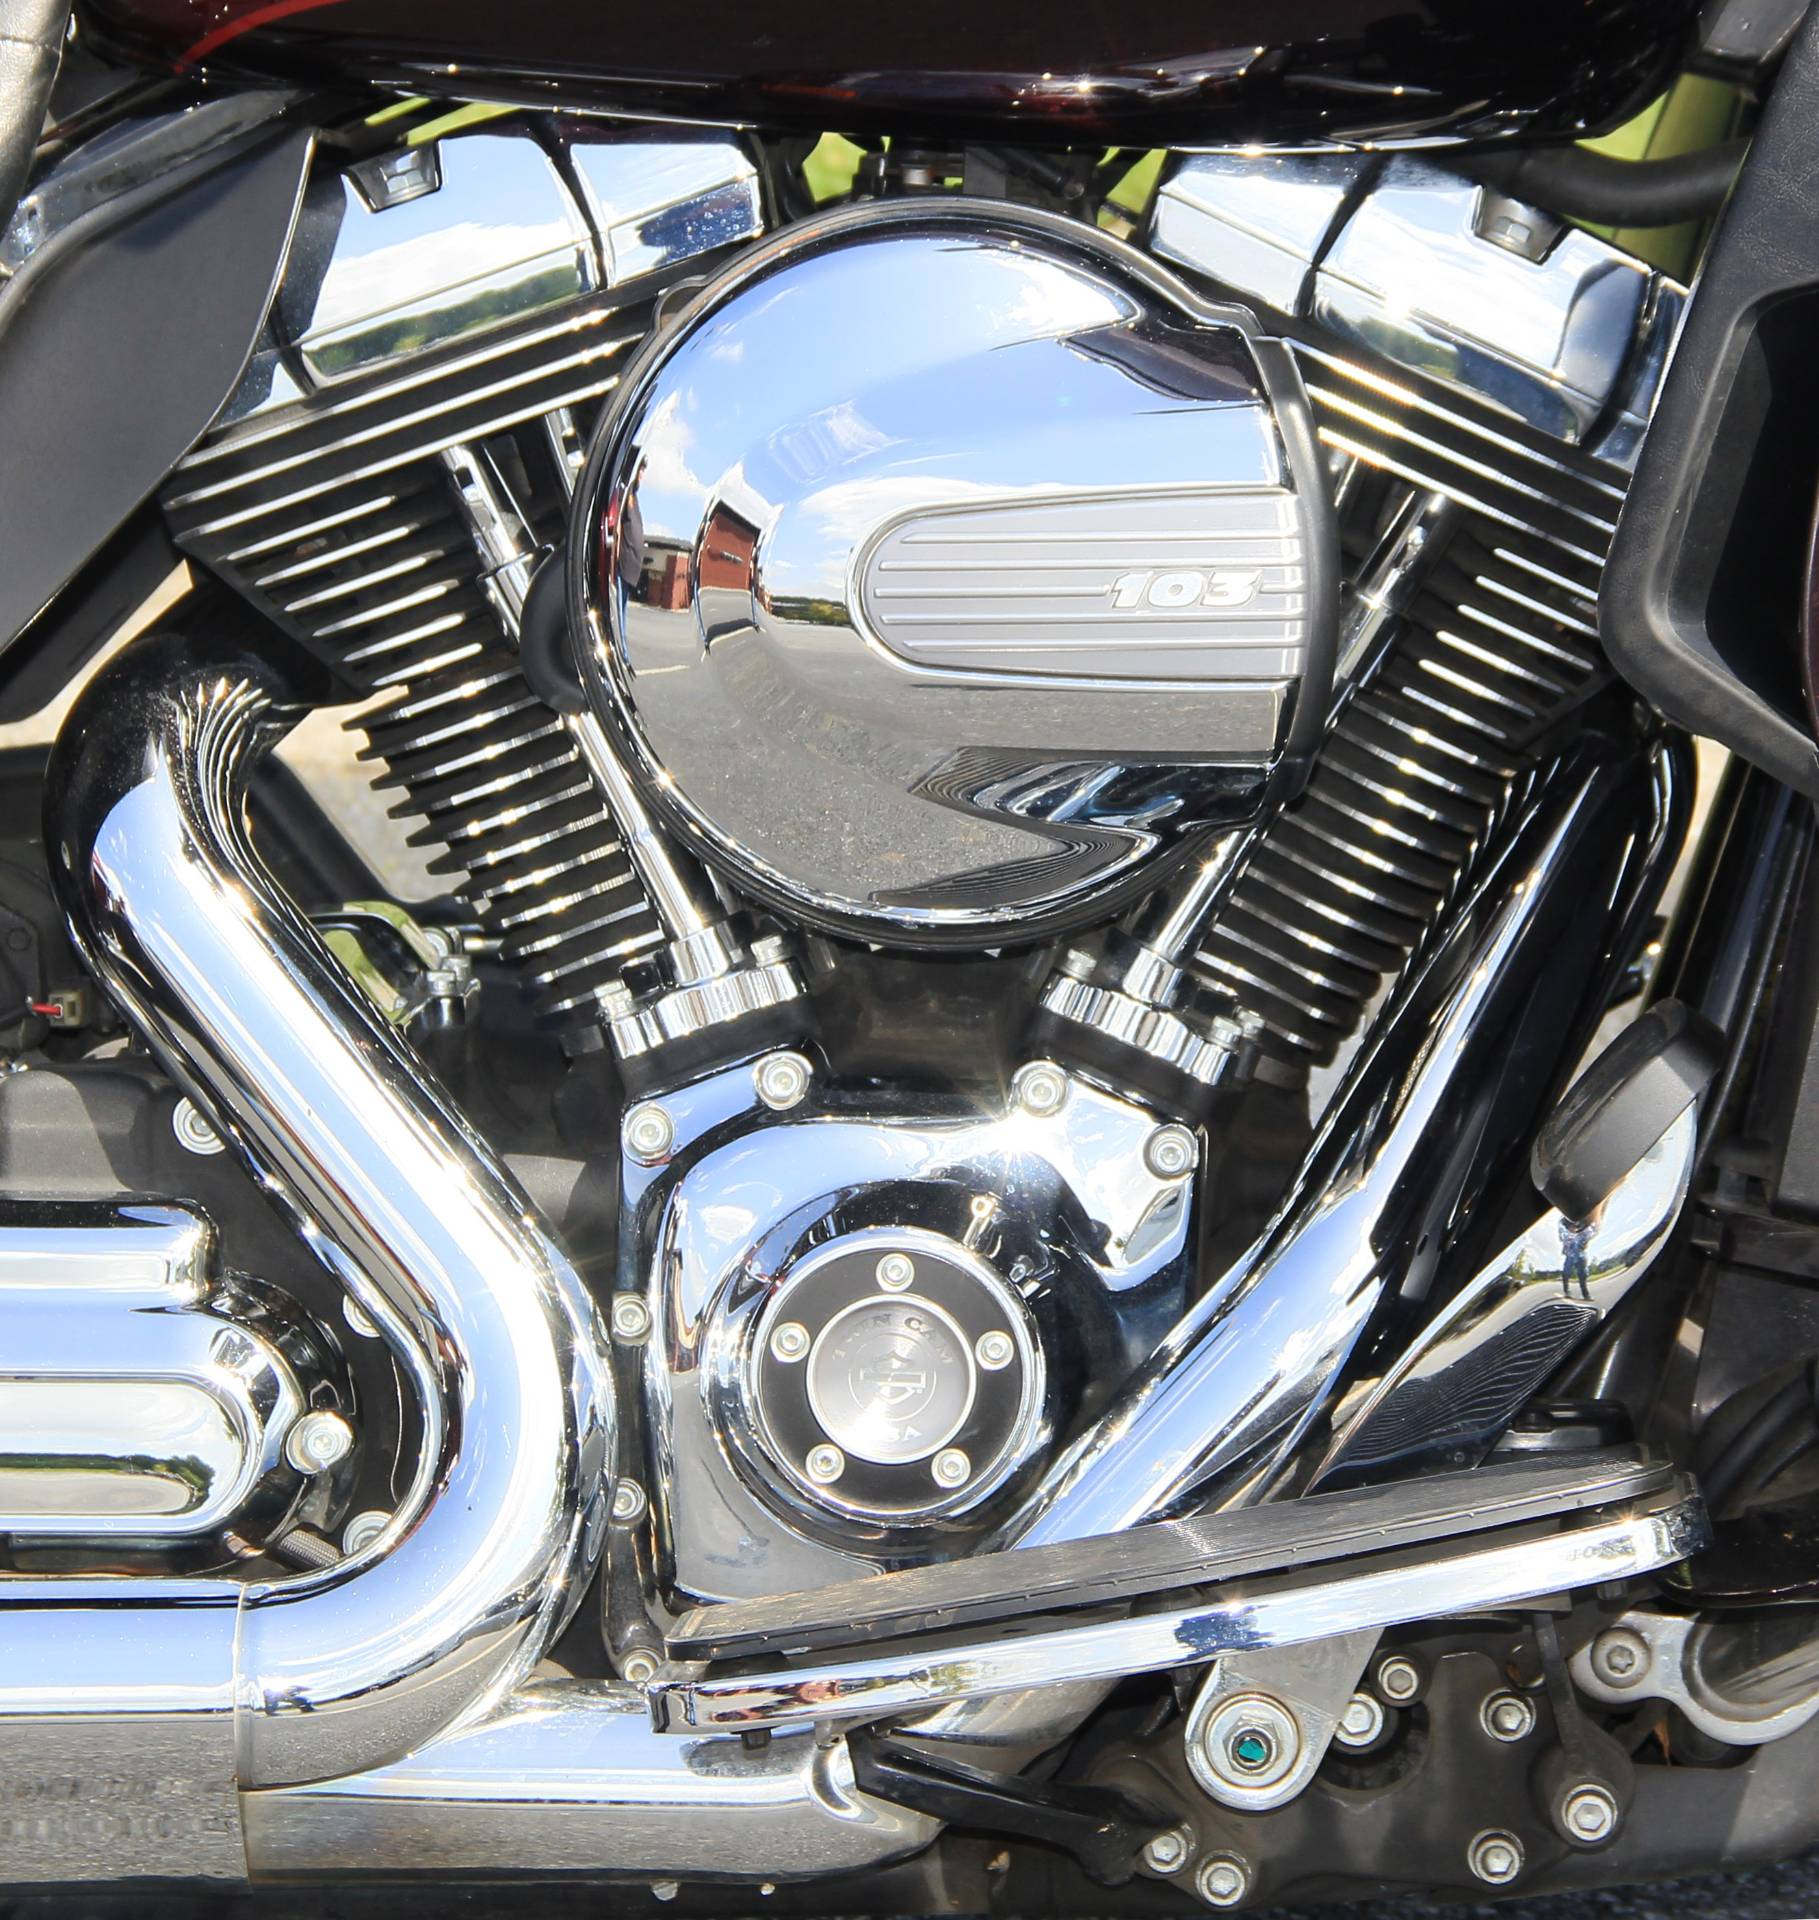 2015 Harley-Davidson Ultra Limited in Cartersville, Georgia - Photo 12